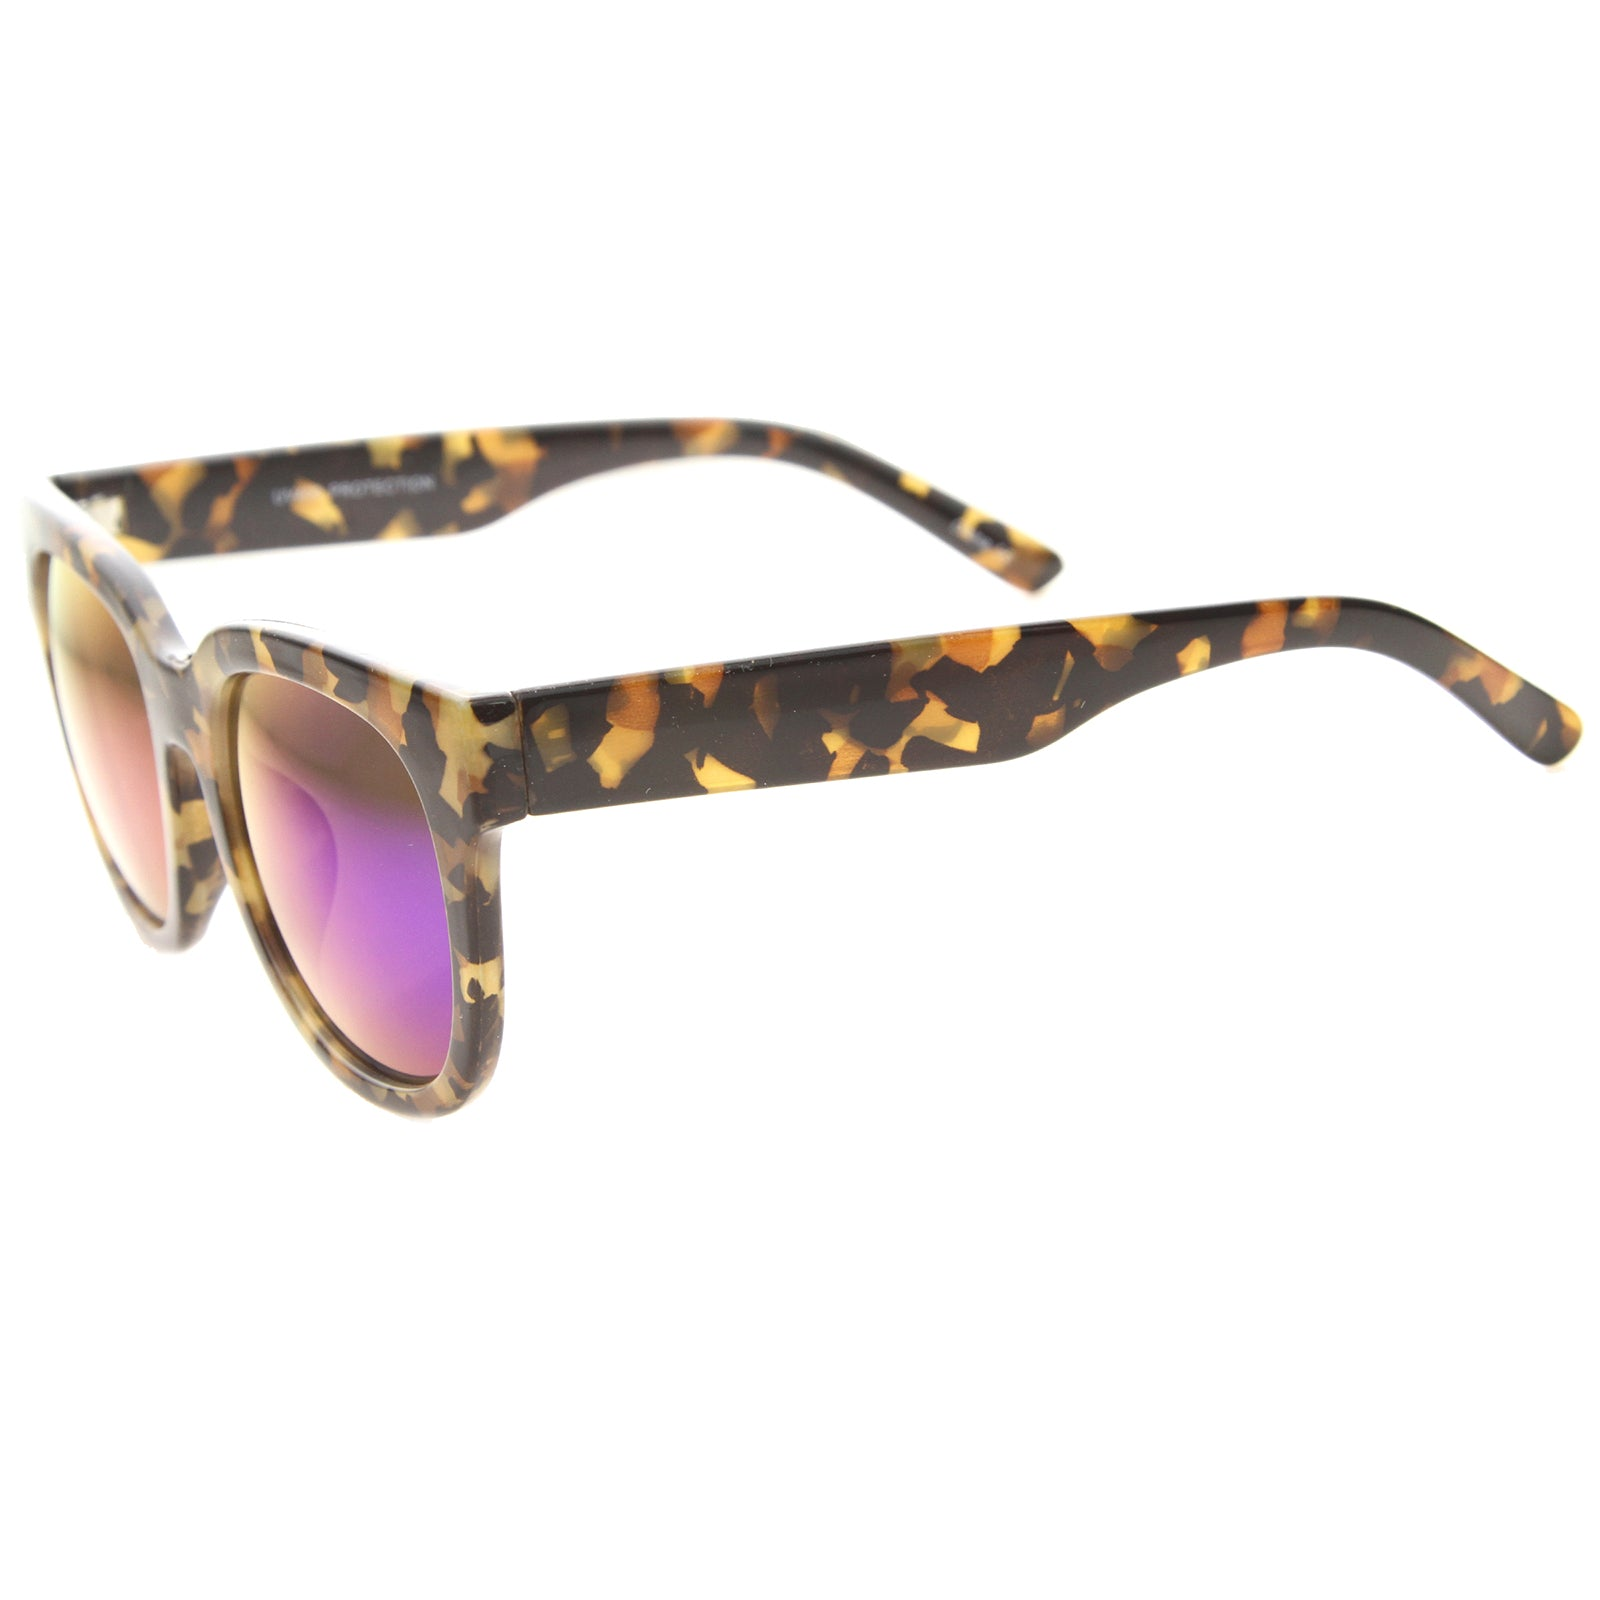 Womens Cat Eye Sunglasses With UV400 Protected Mirrored Lens - sunglass.la - 7